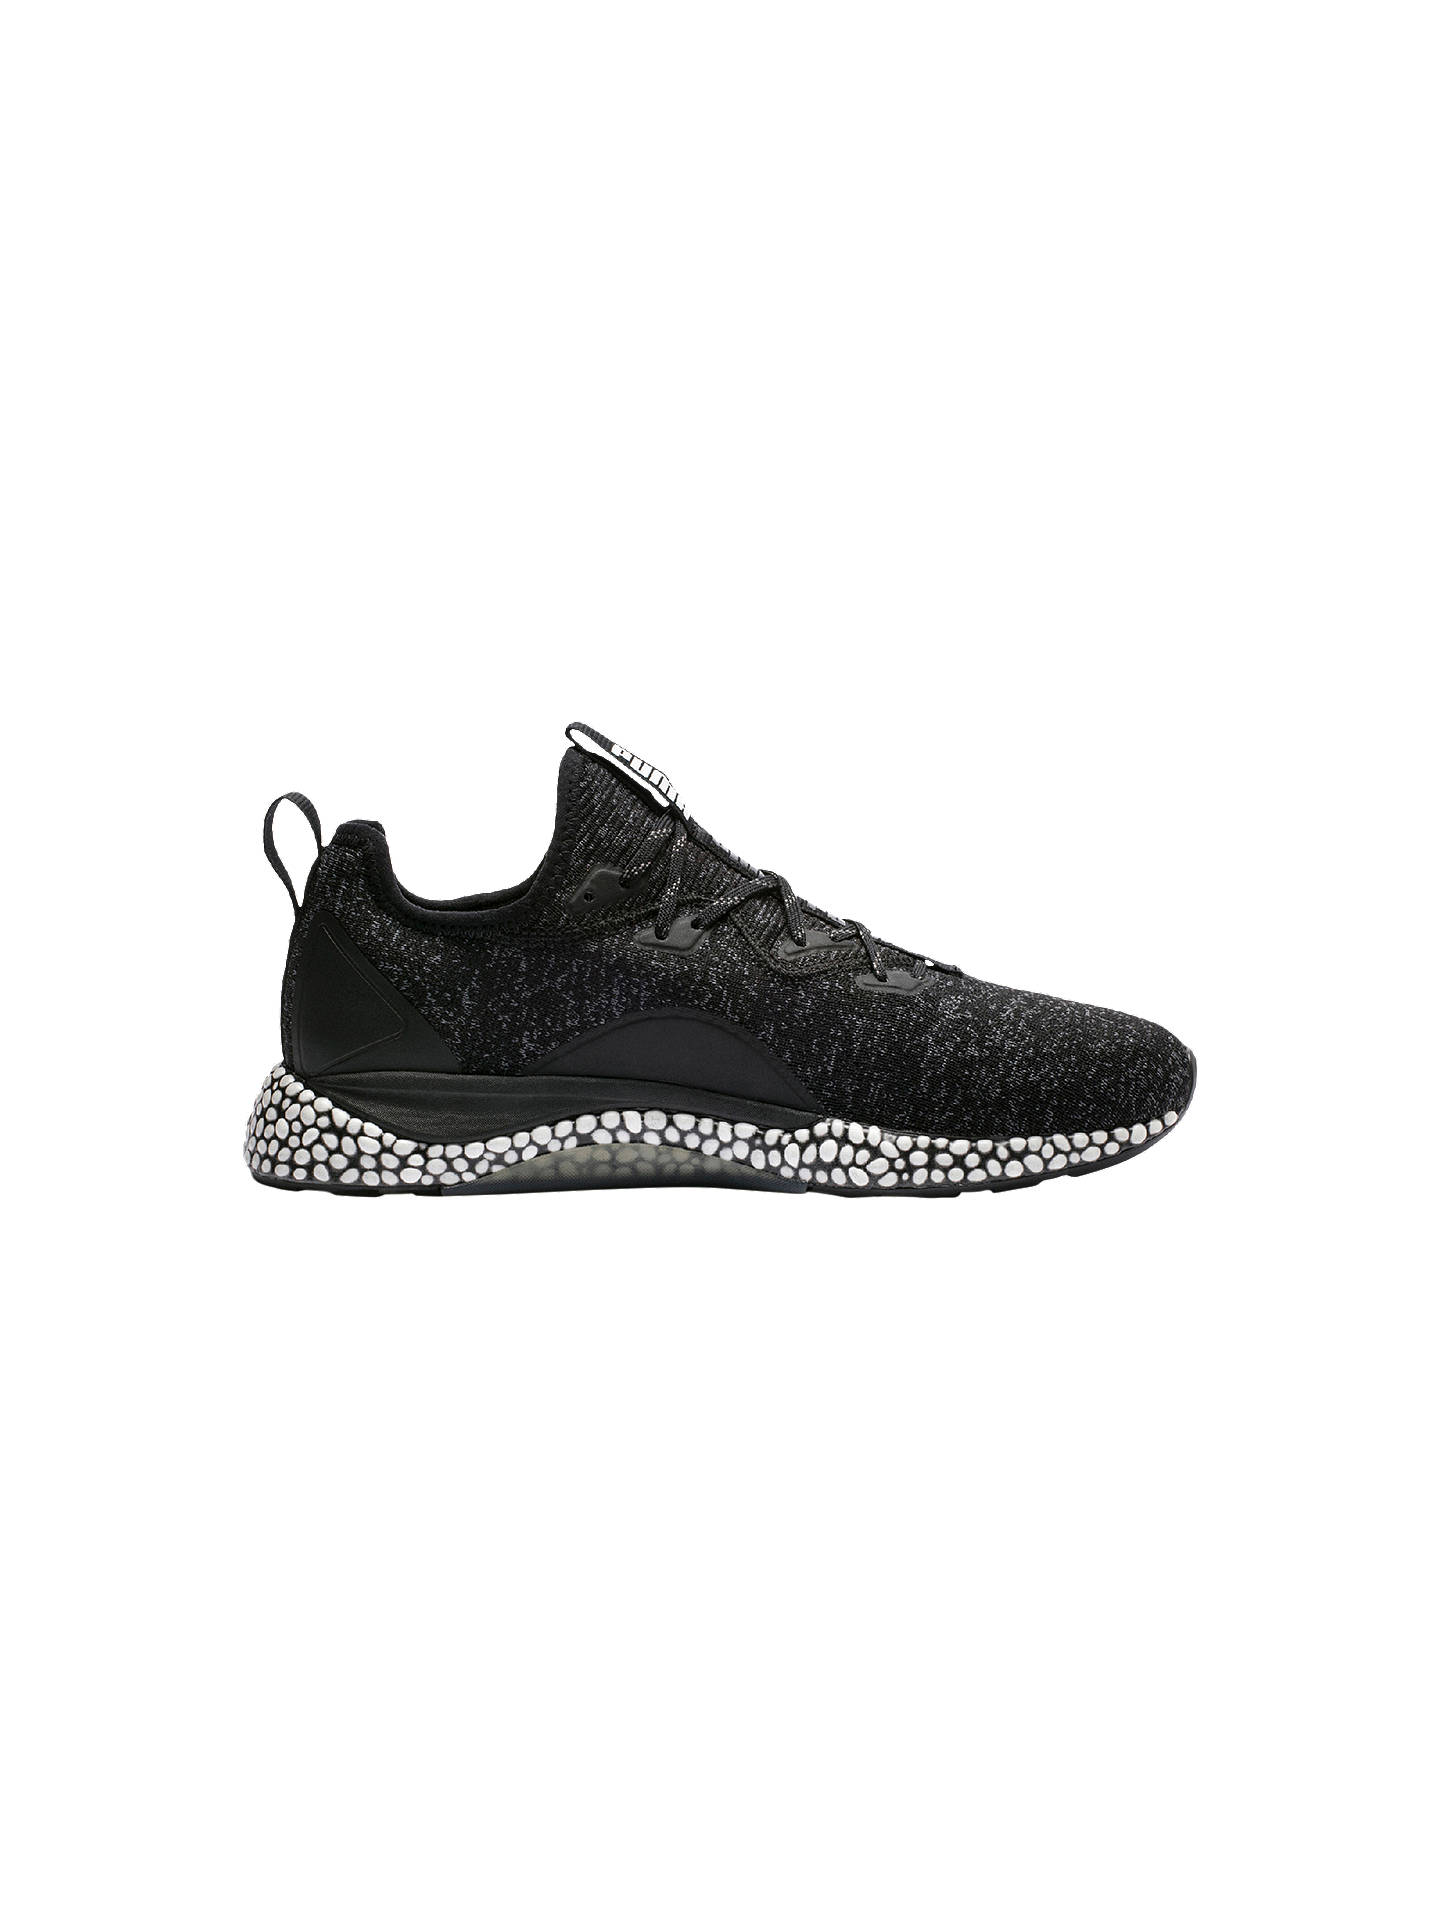 2178a90312f5 BuyPUMA Hybrid Runner Men s Running Shoes